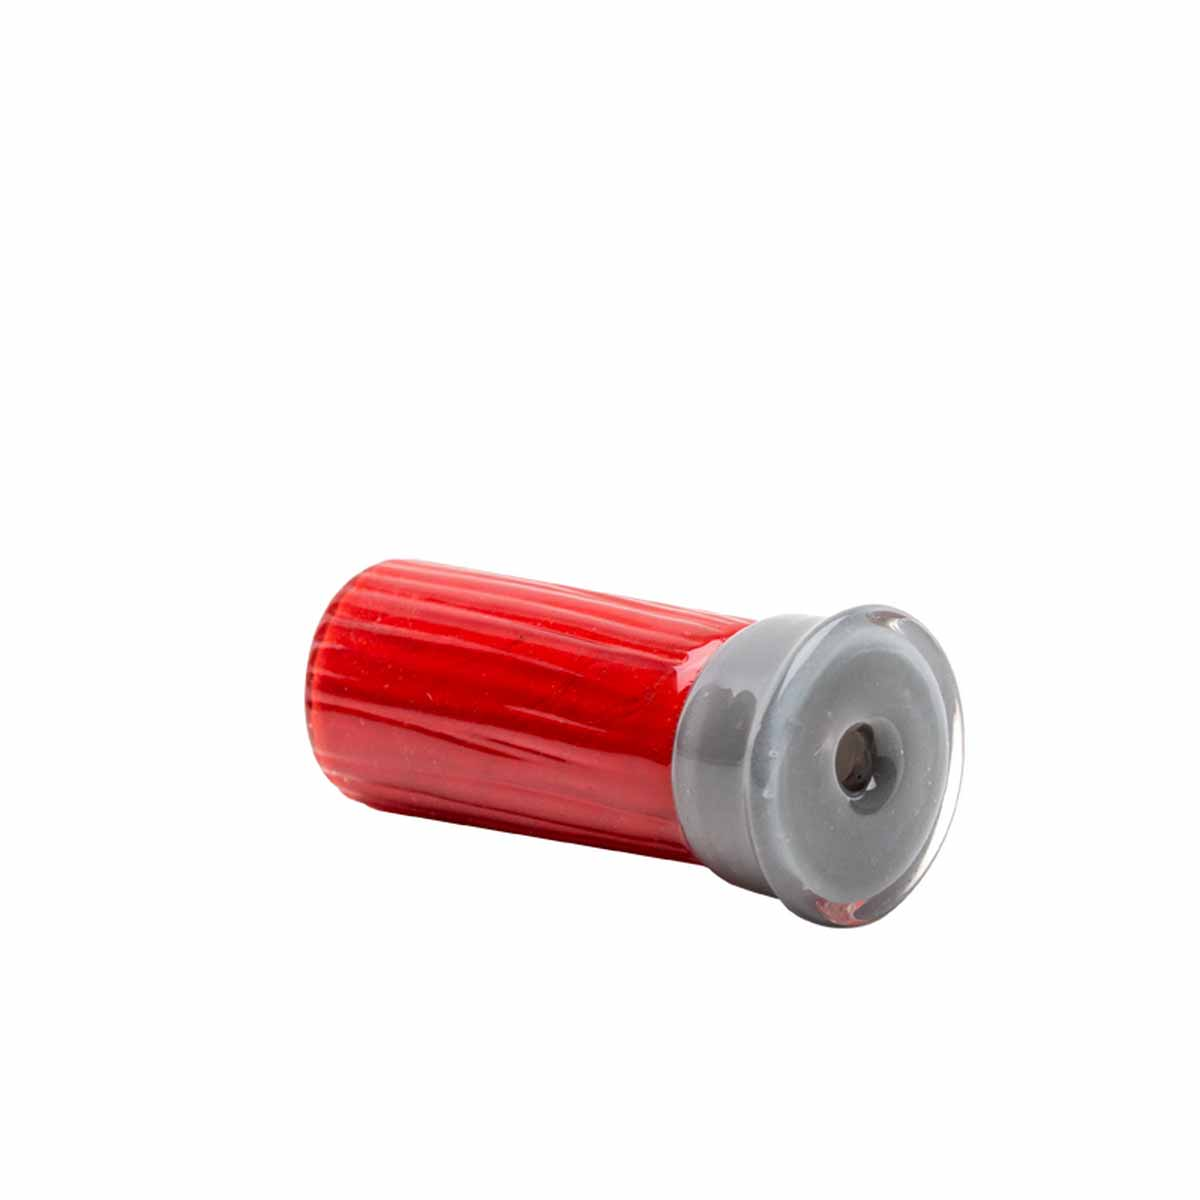 Chillum - Shotgun Shell